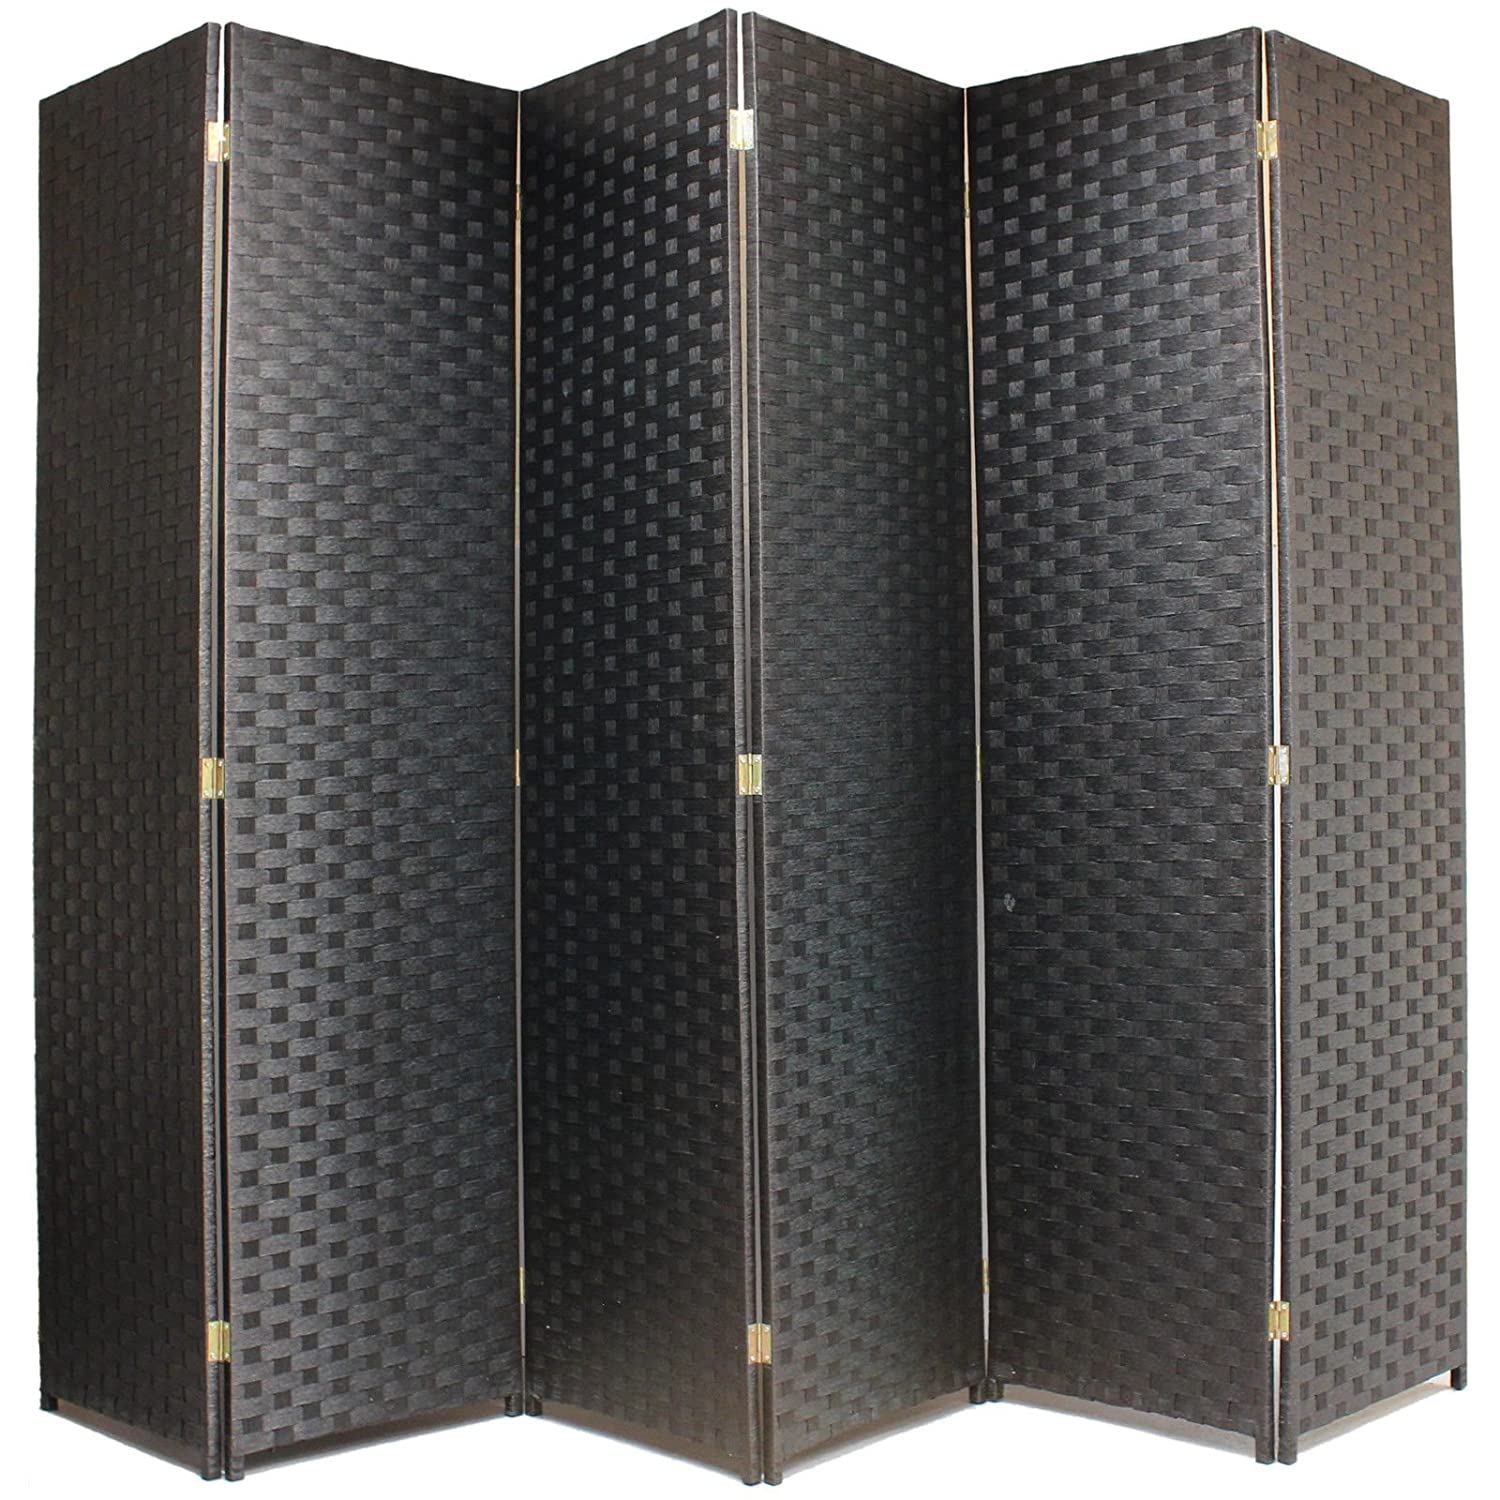 Black 6 Panels Lightweight Hand Made Woven Folding Room Separator & Privacy Panel with Folding Design (Height  180cm, Individual Width  45cm) (Brown, 3 Panels)